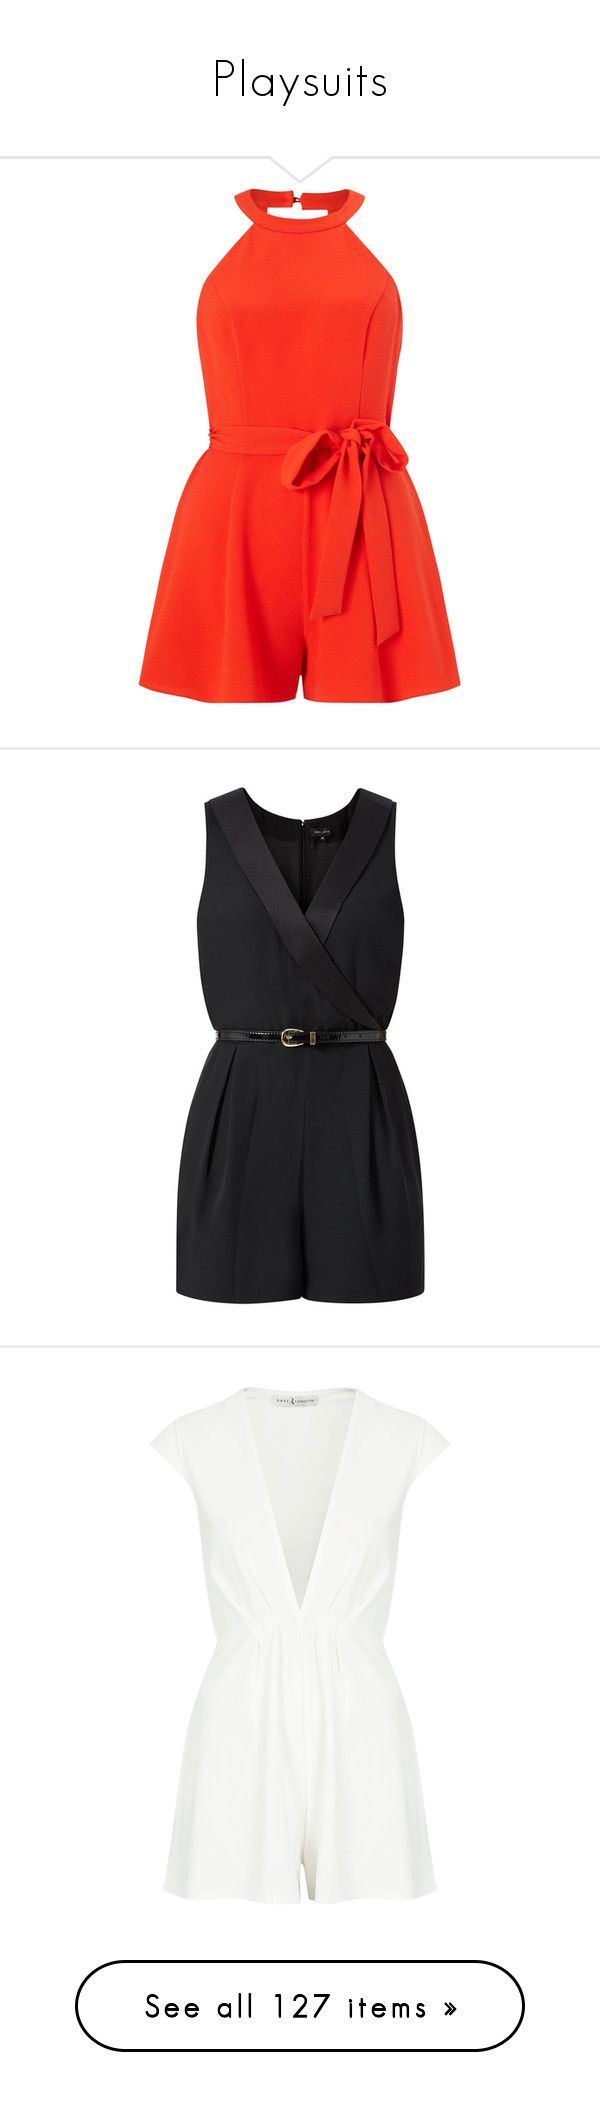 """""""Playsuits"""" by giovanna1995 ❤ liked on Polyvore featuring playsuit, jumpsuits, rompers, dresses, jumpsuits and rompers, petite, short rompers, short sleeve romper, sleeveless jumpsuits and red rompers"""